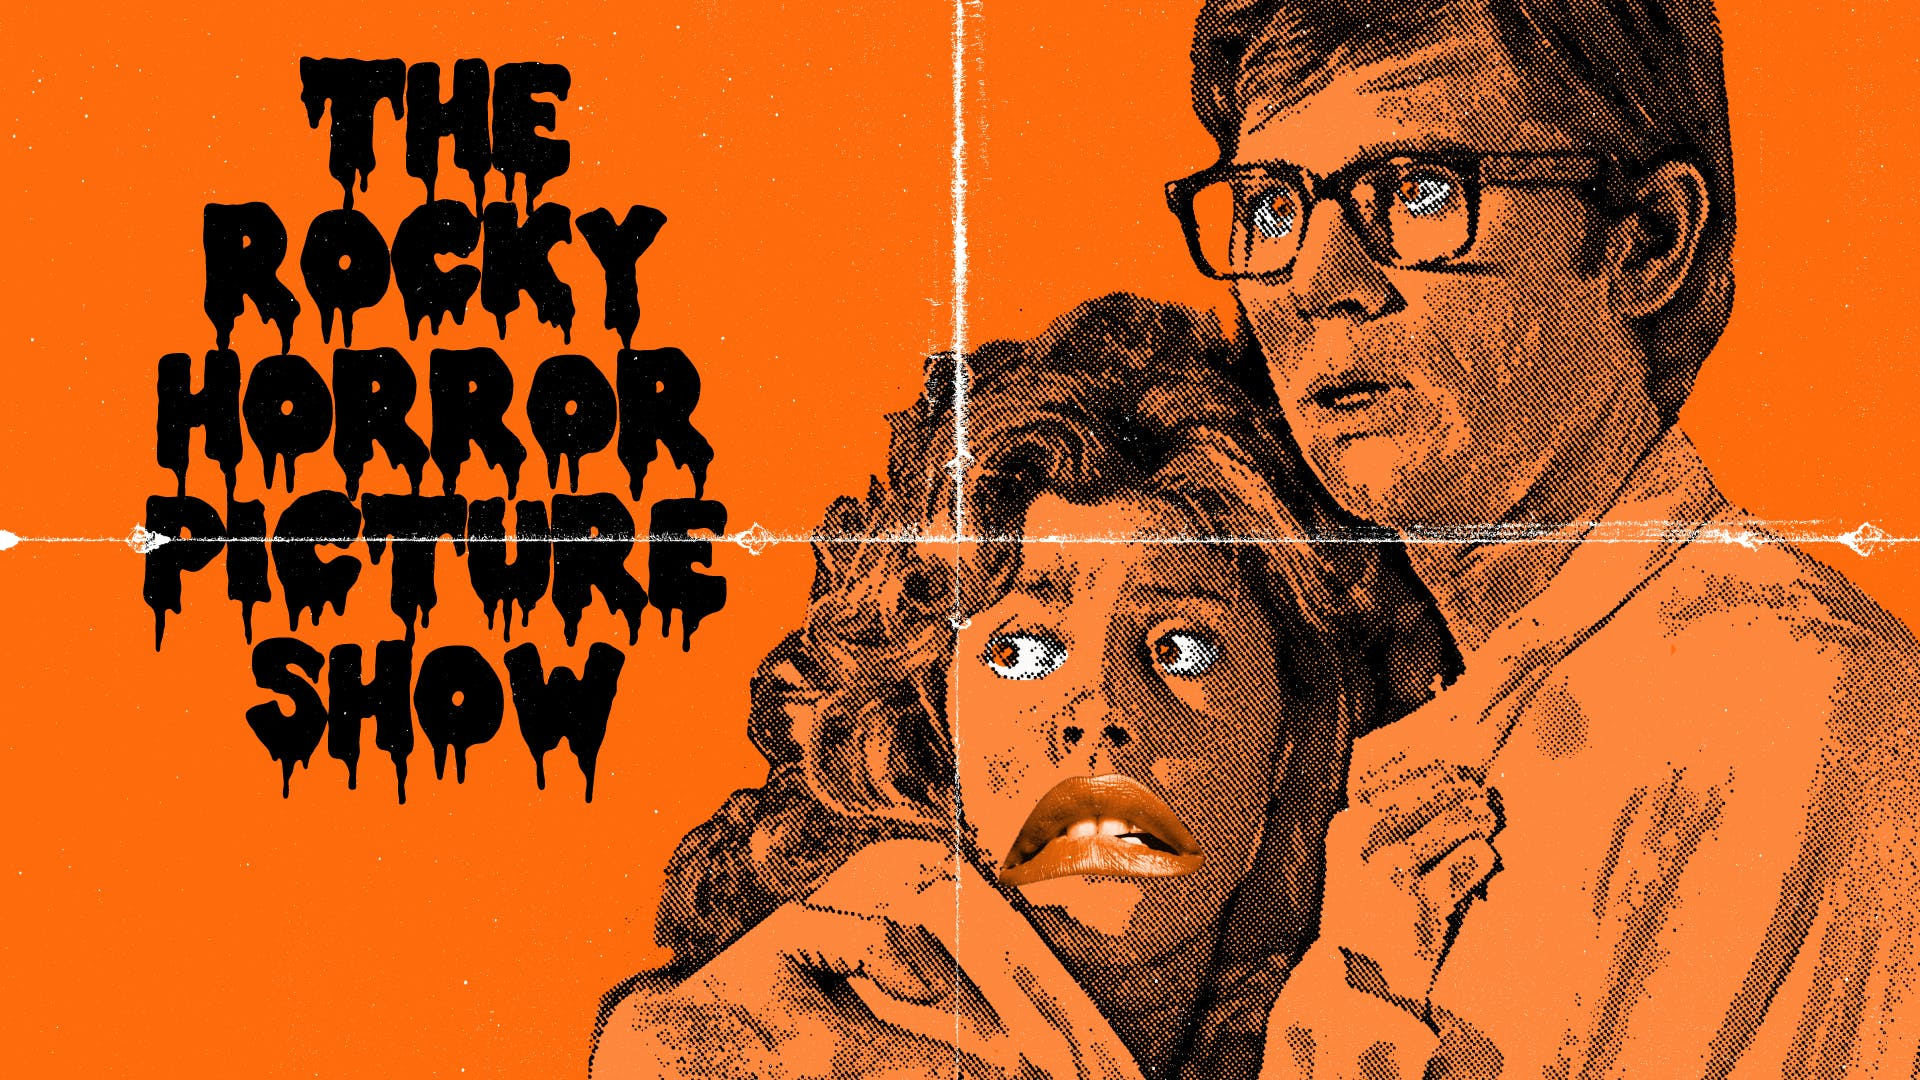 The Rocky Horror Picture Show 17 May 2019